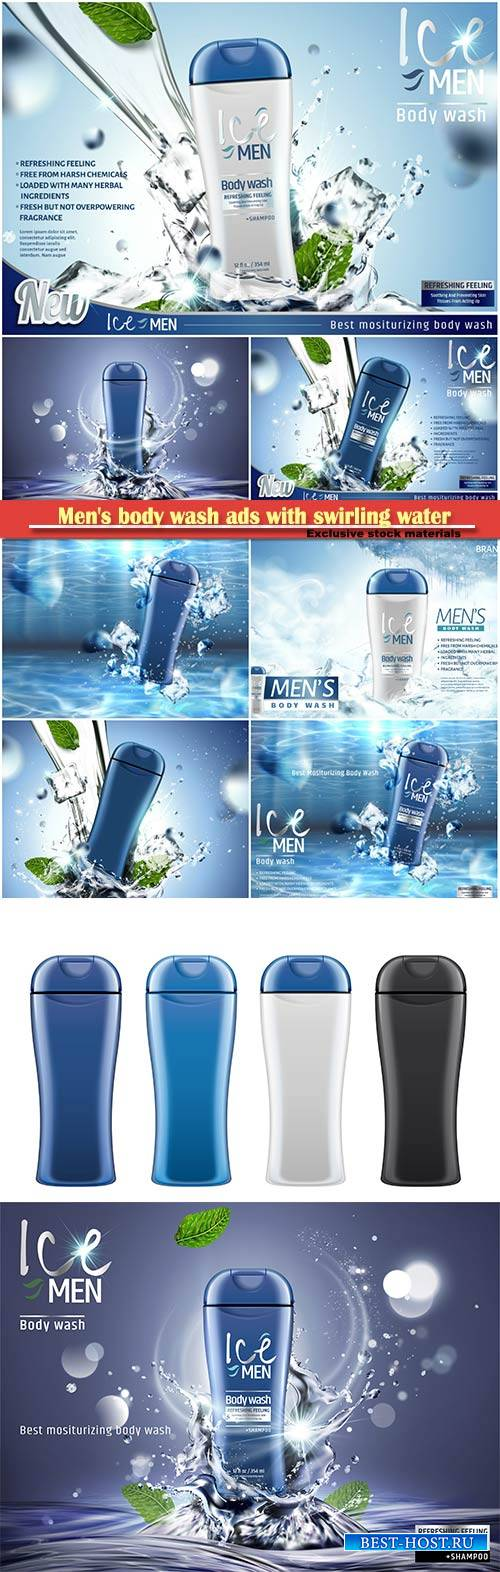 Men's body wash ads with swirling water in 3d vector illustration